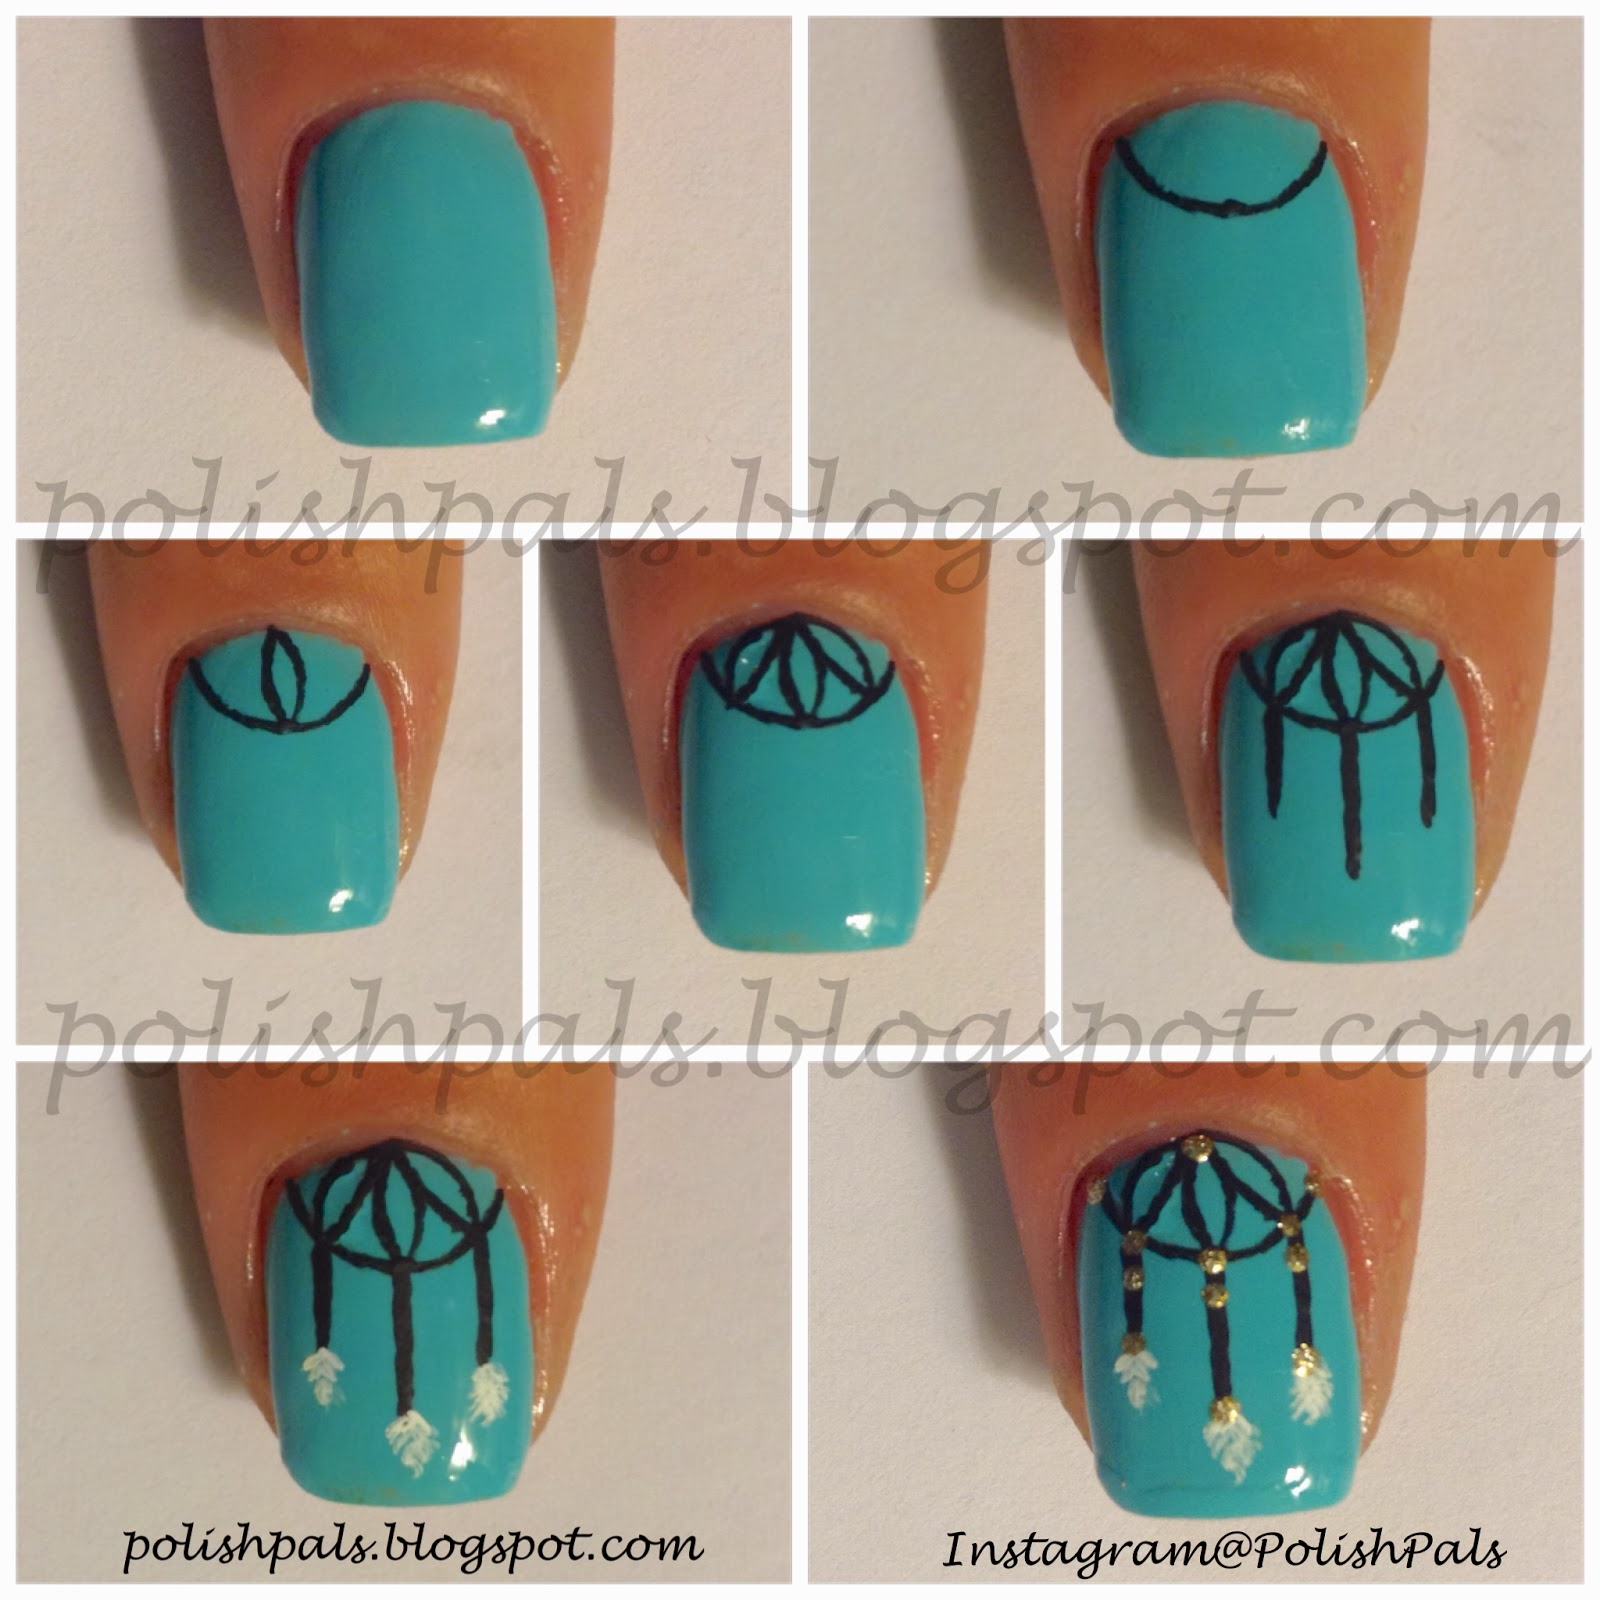 http://polishpals.blogspot.com/2013/12/dream-catcher-tutorial.html